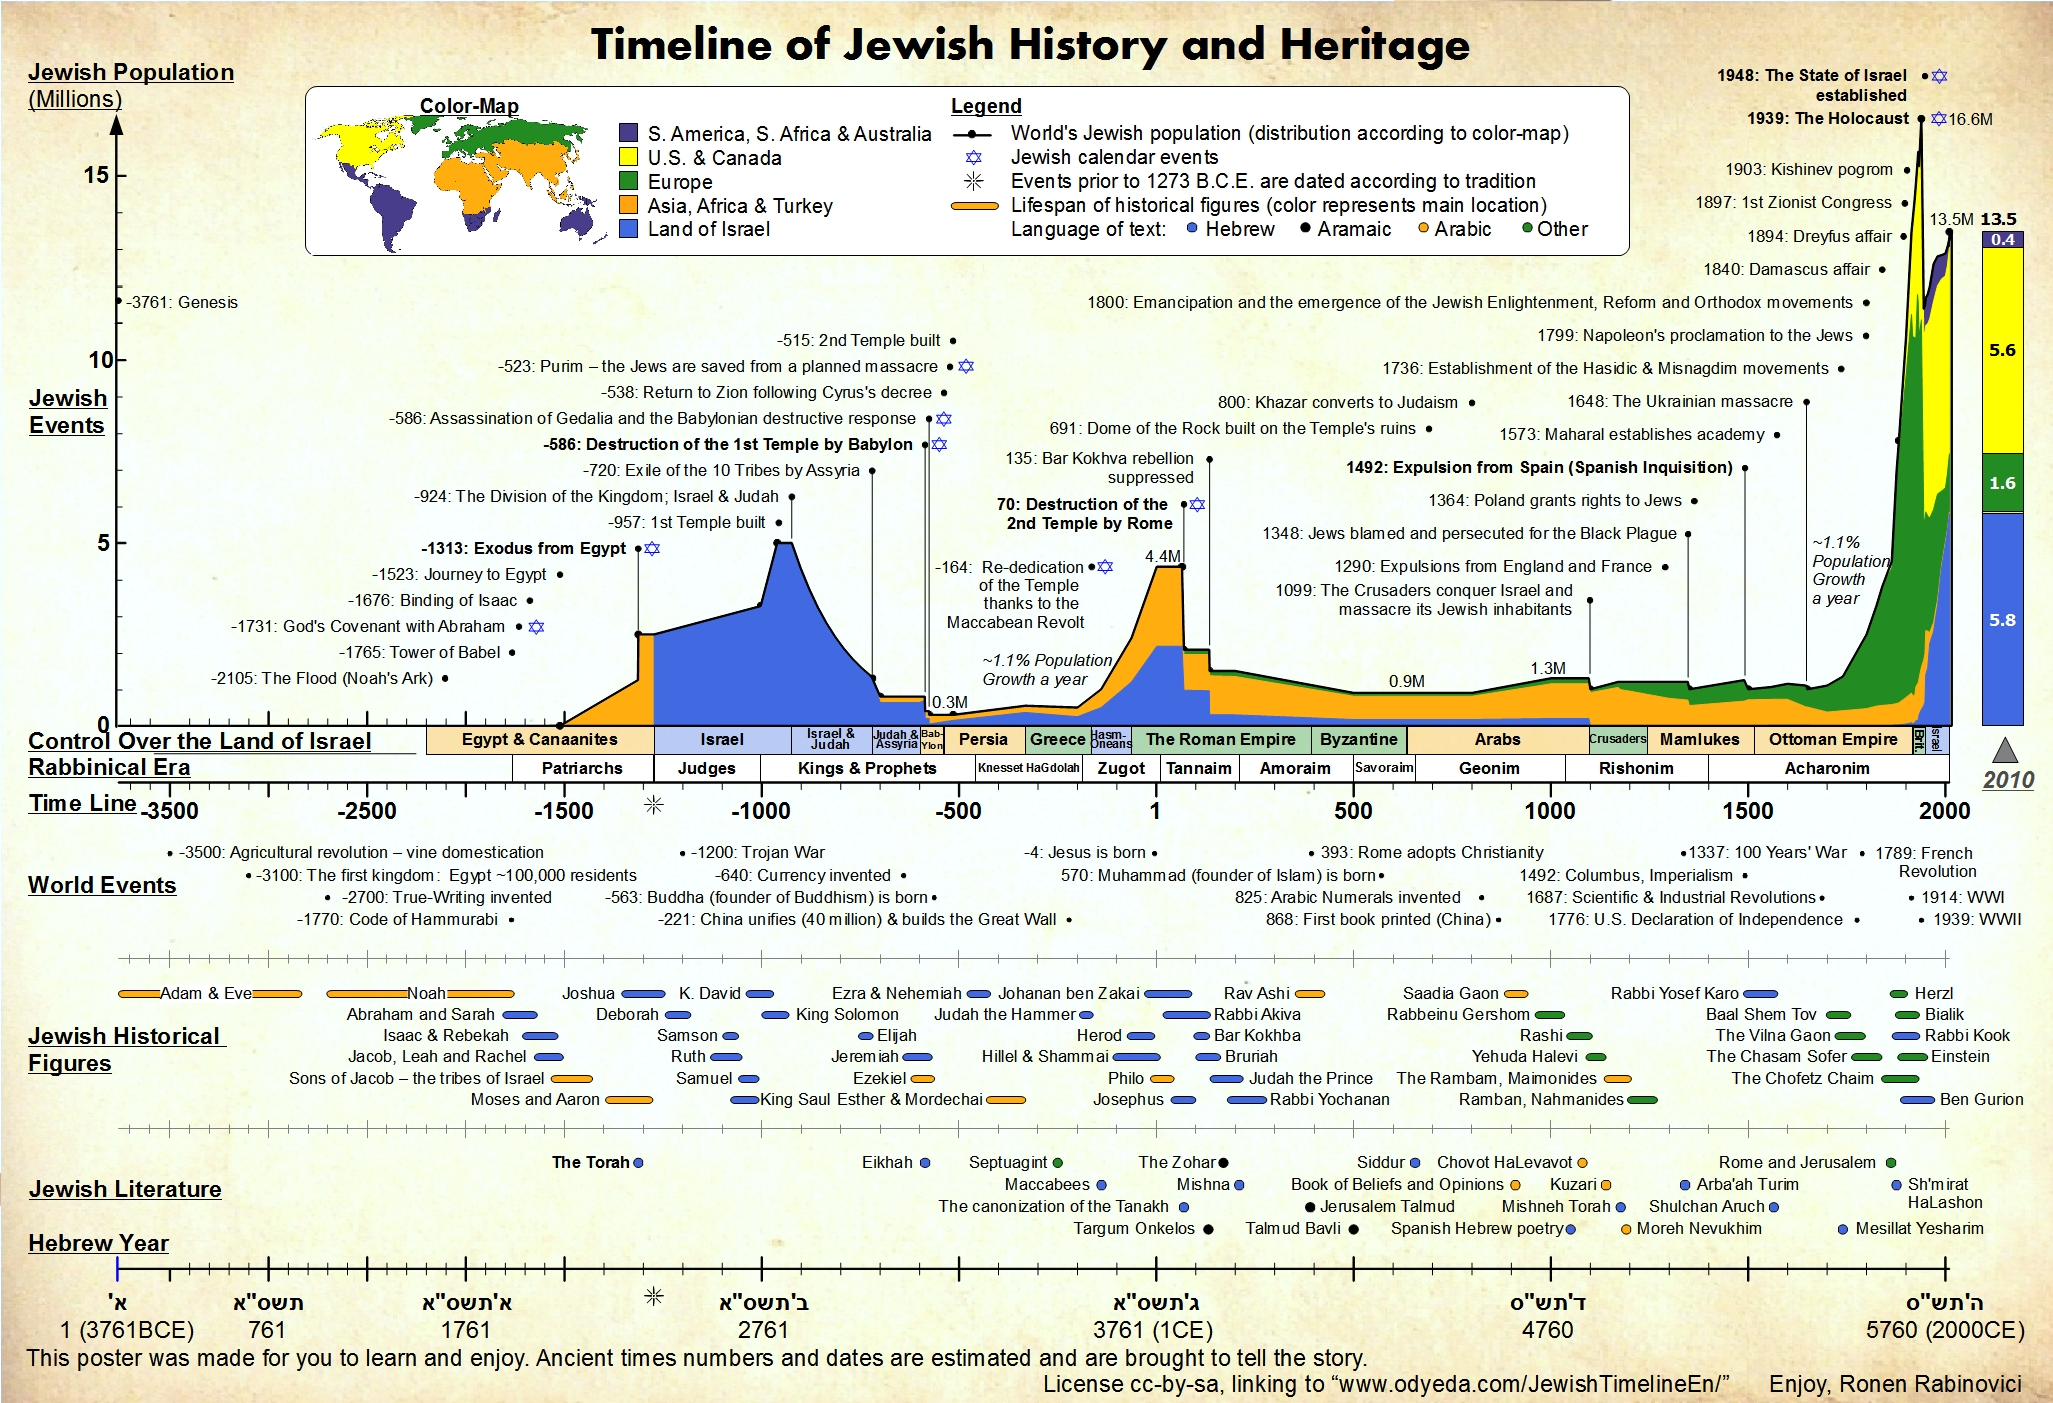 a history of judaism The biblical history of the jews begins with abraham and the jewish patriarchs  abraham rejects idolatry, and declares the adherence of his people to a single.